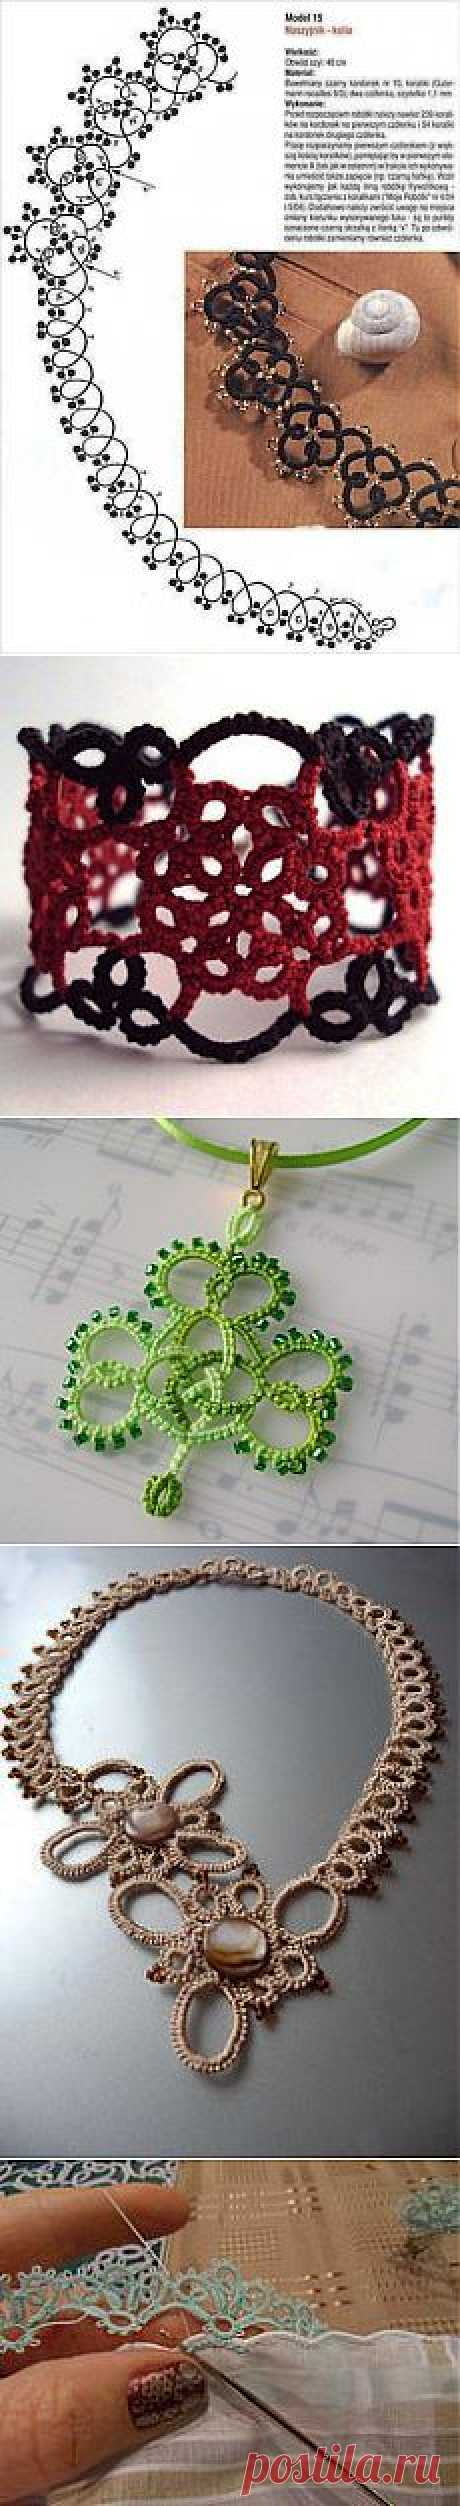 tatting | Projects to Try